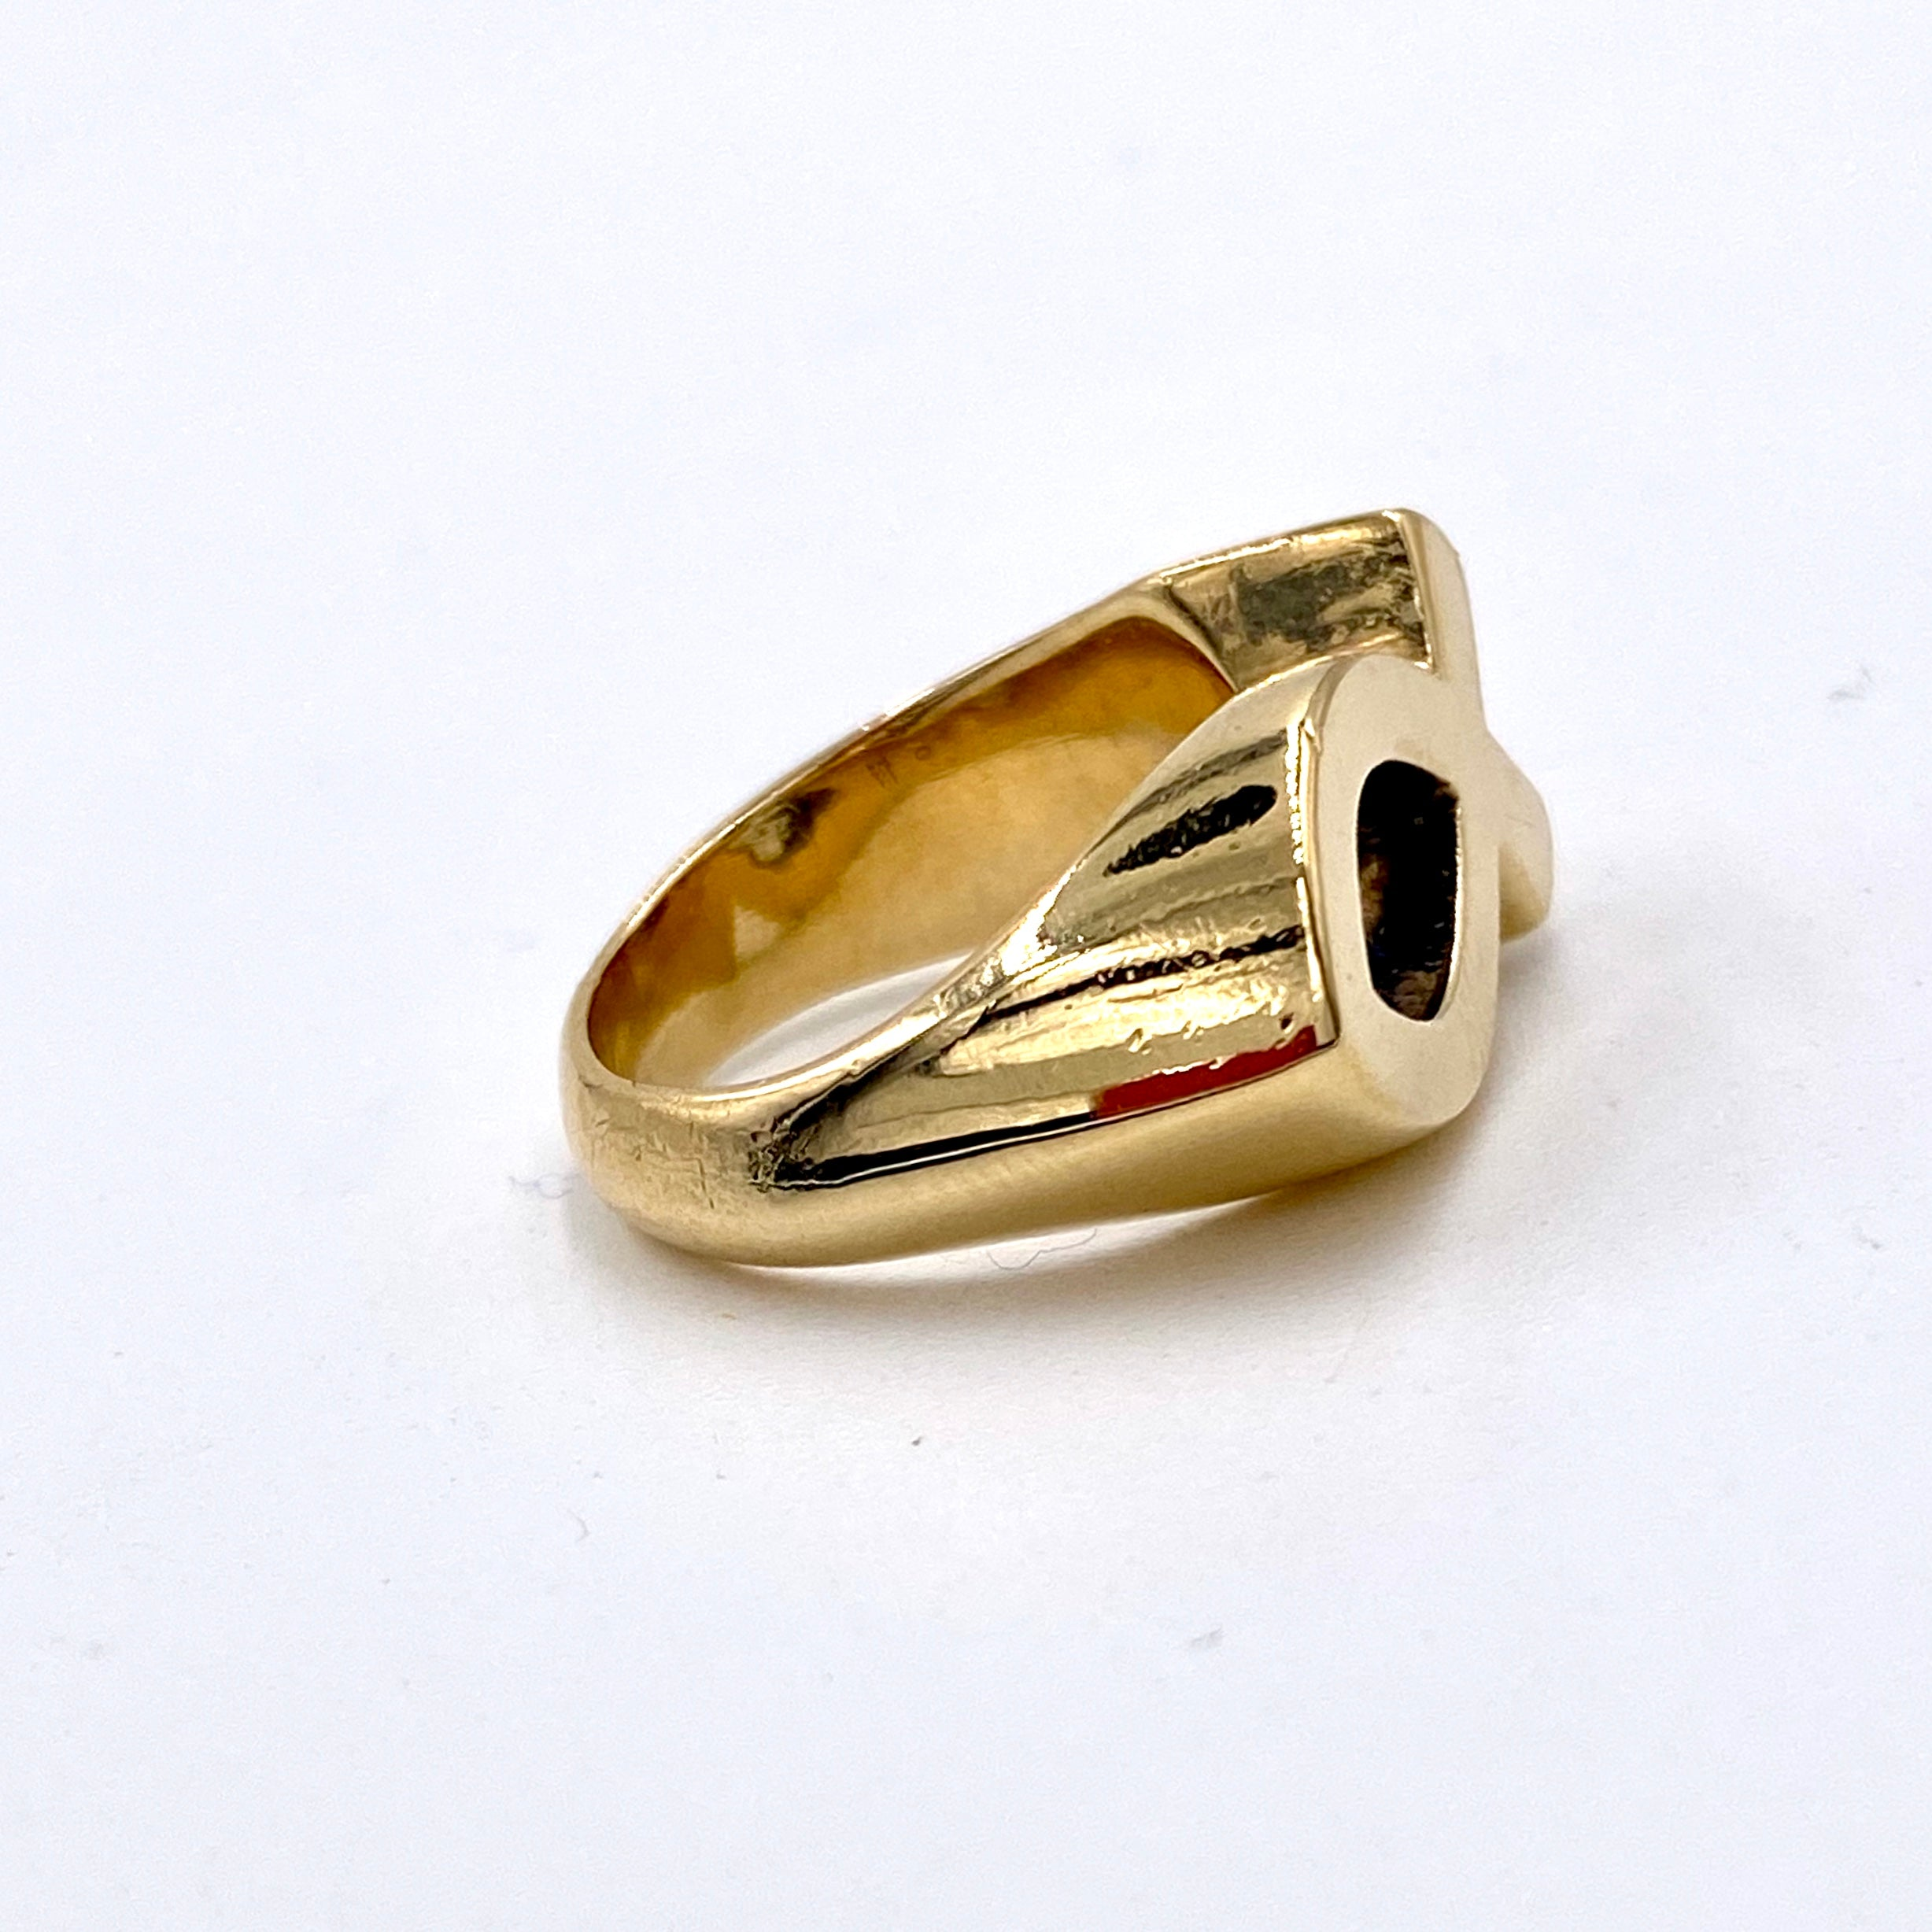 James Avery Ring Religious Jesus Fish Ichthus Hallmarked Retired 14K Yellow Gold